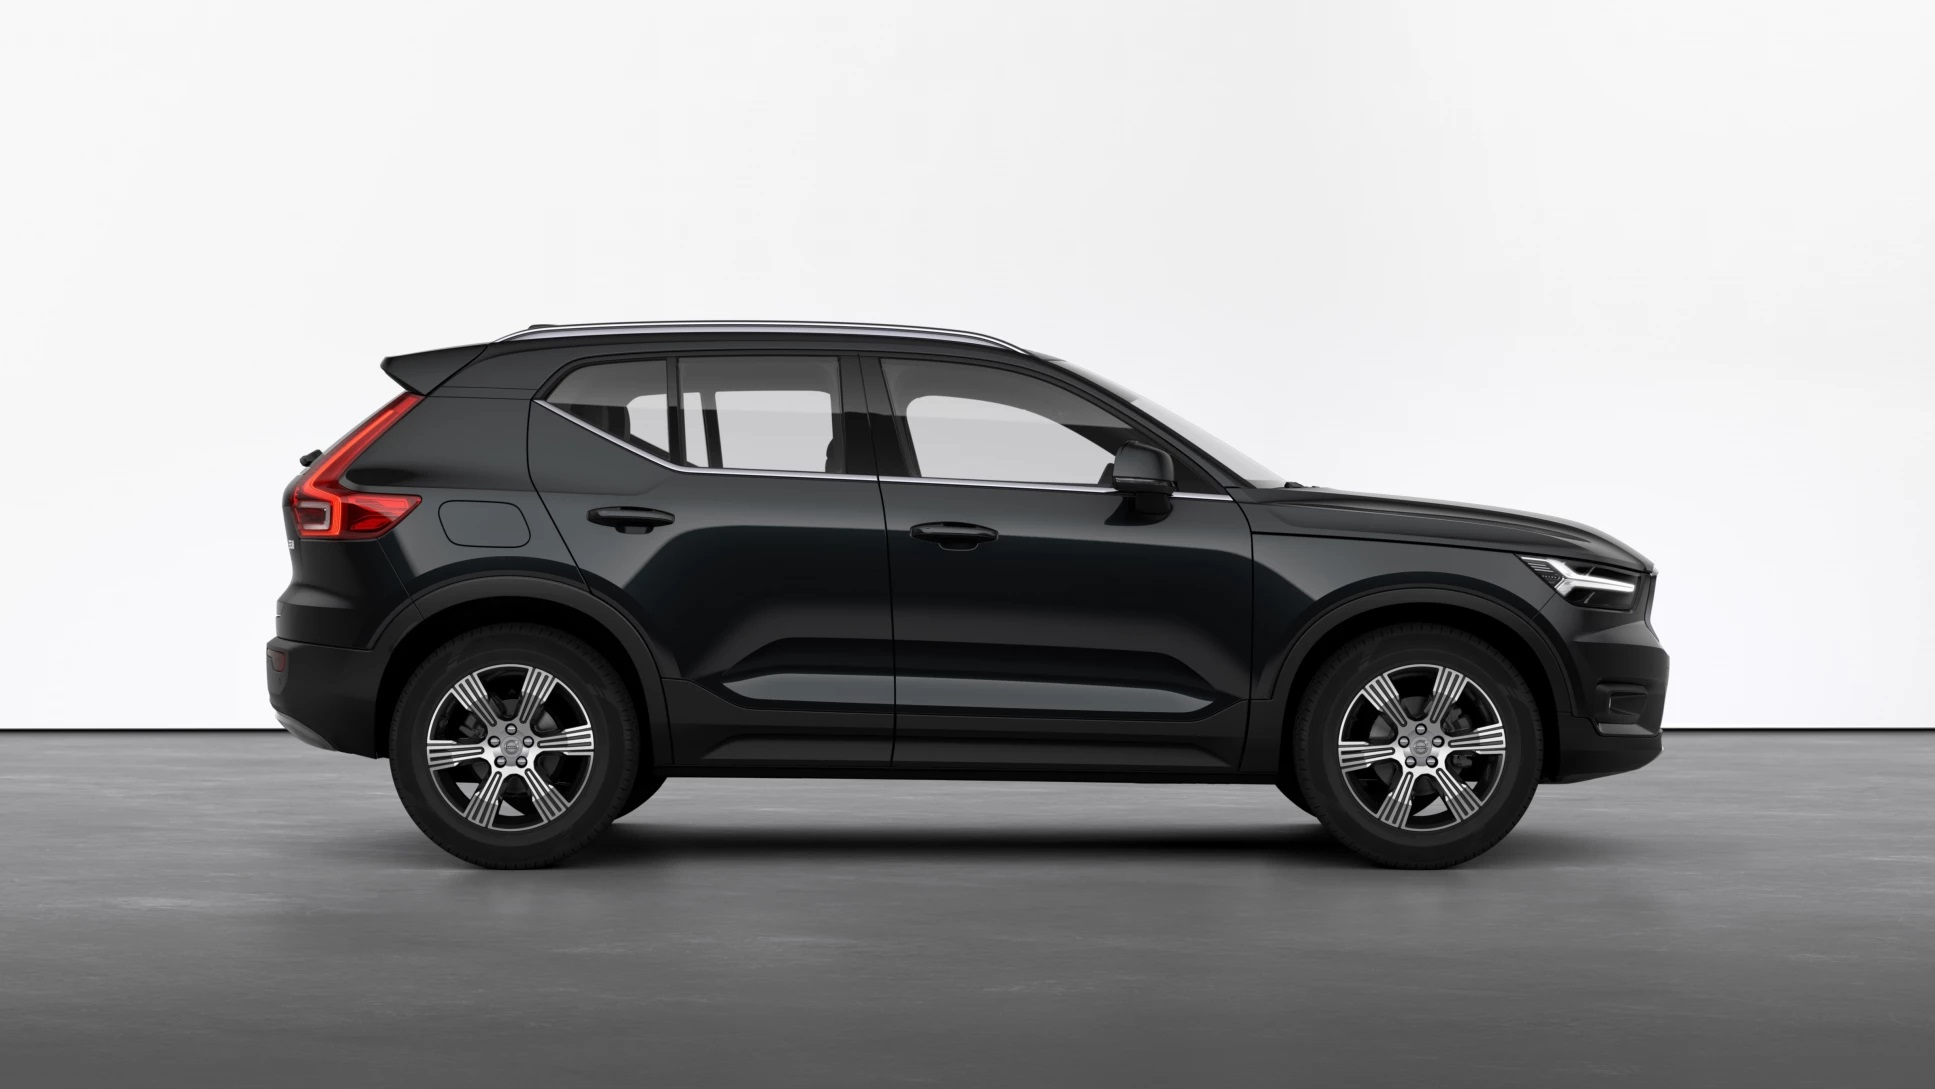 Volvo XC40 B4 (Petrol) Mild Hybrid AT8 AWD Inscription – 12470